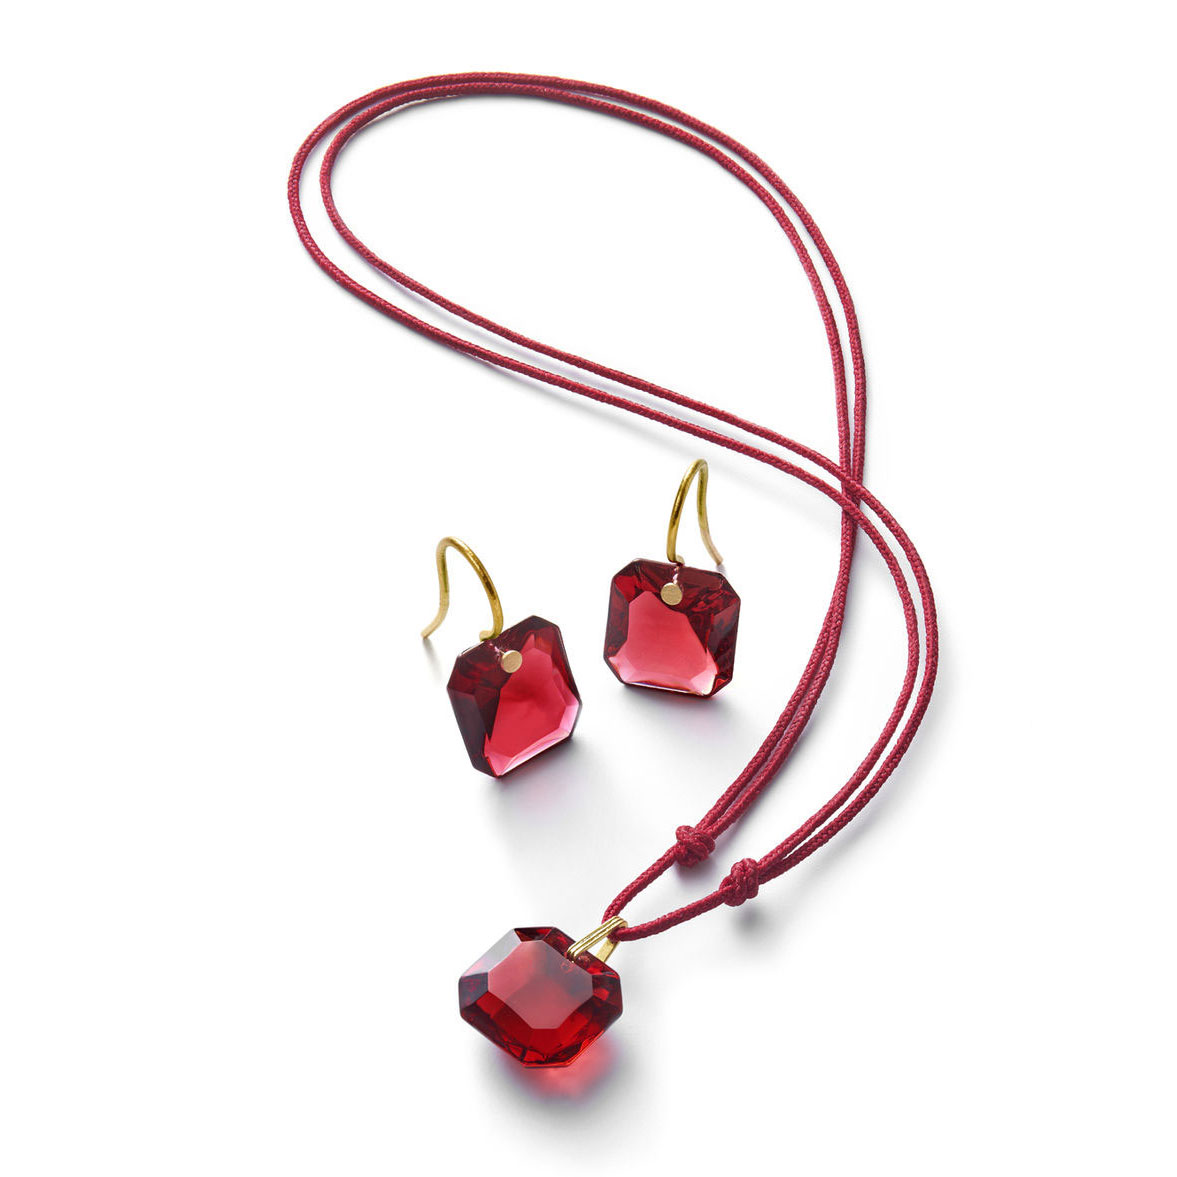 Baccarat Crystal Marie-Helene De Taillac Earrings Small Wire Vermeil Gold Red